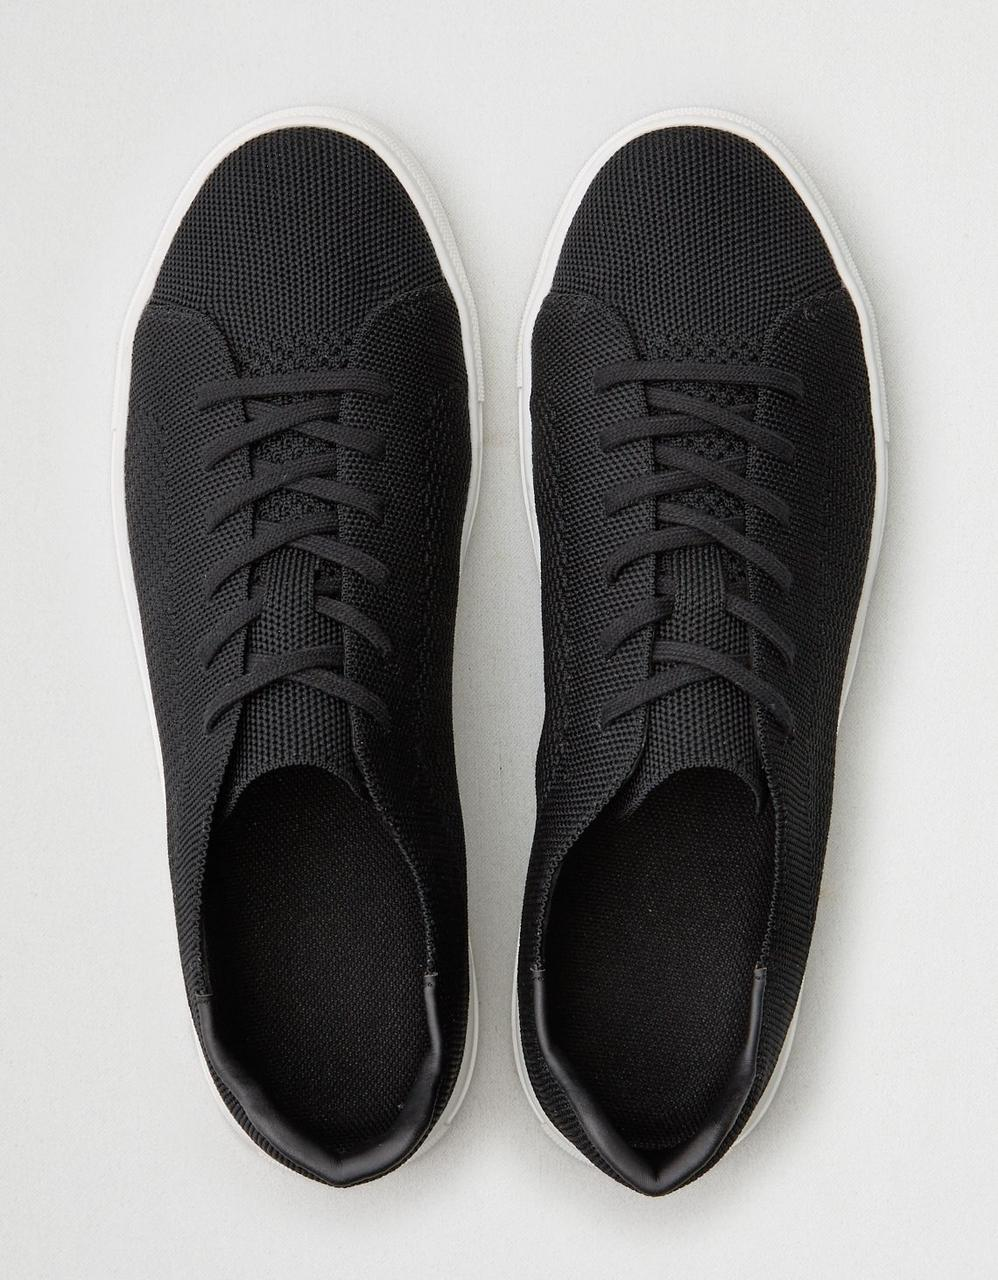 American Eagle Shoes, AEO X-RAY KNIT